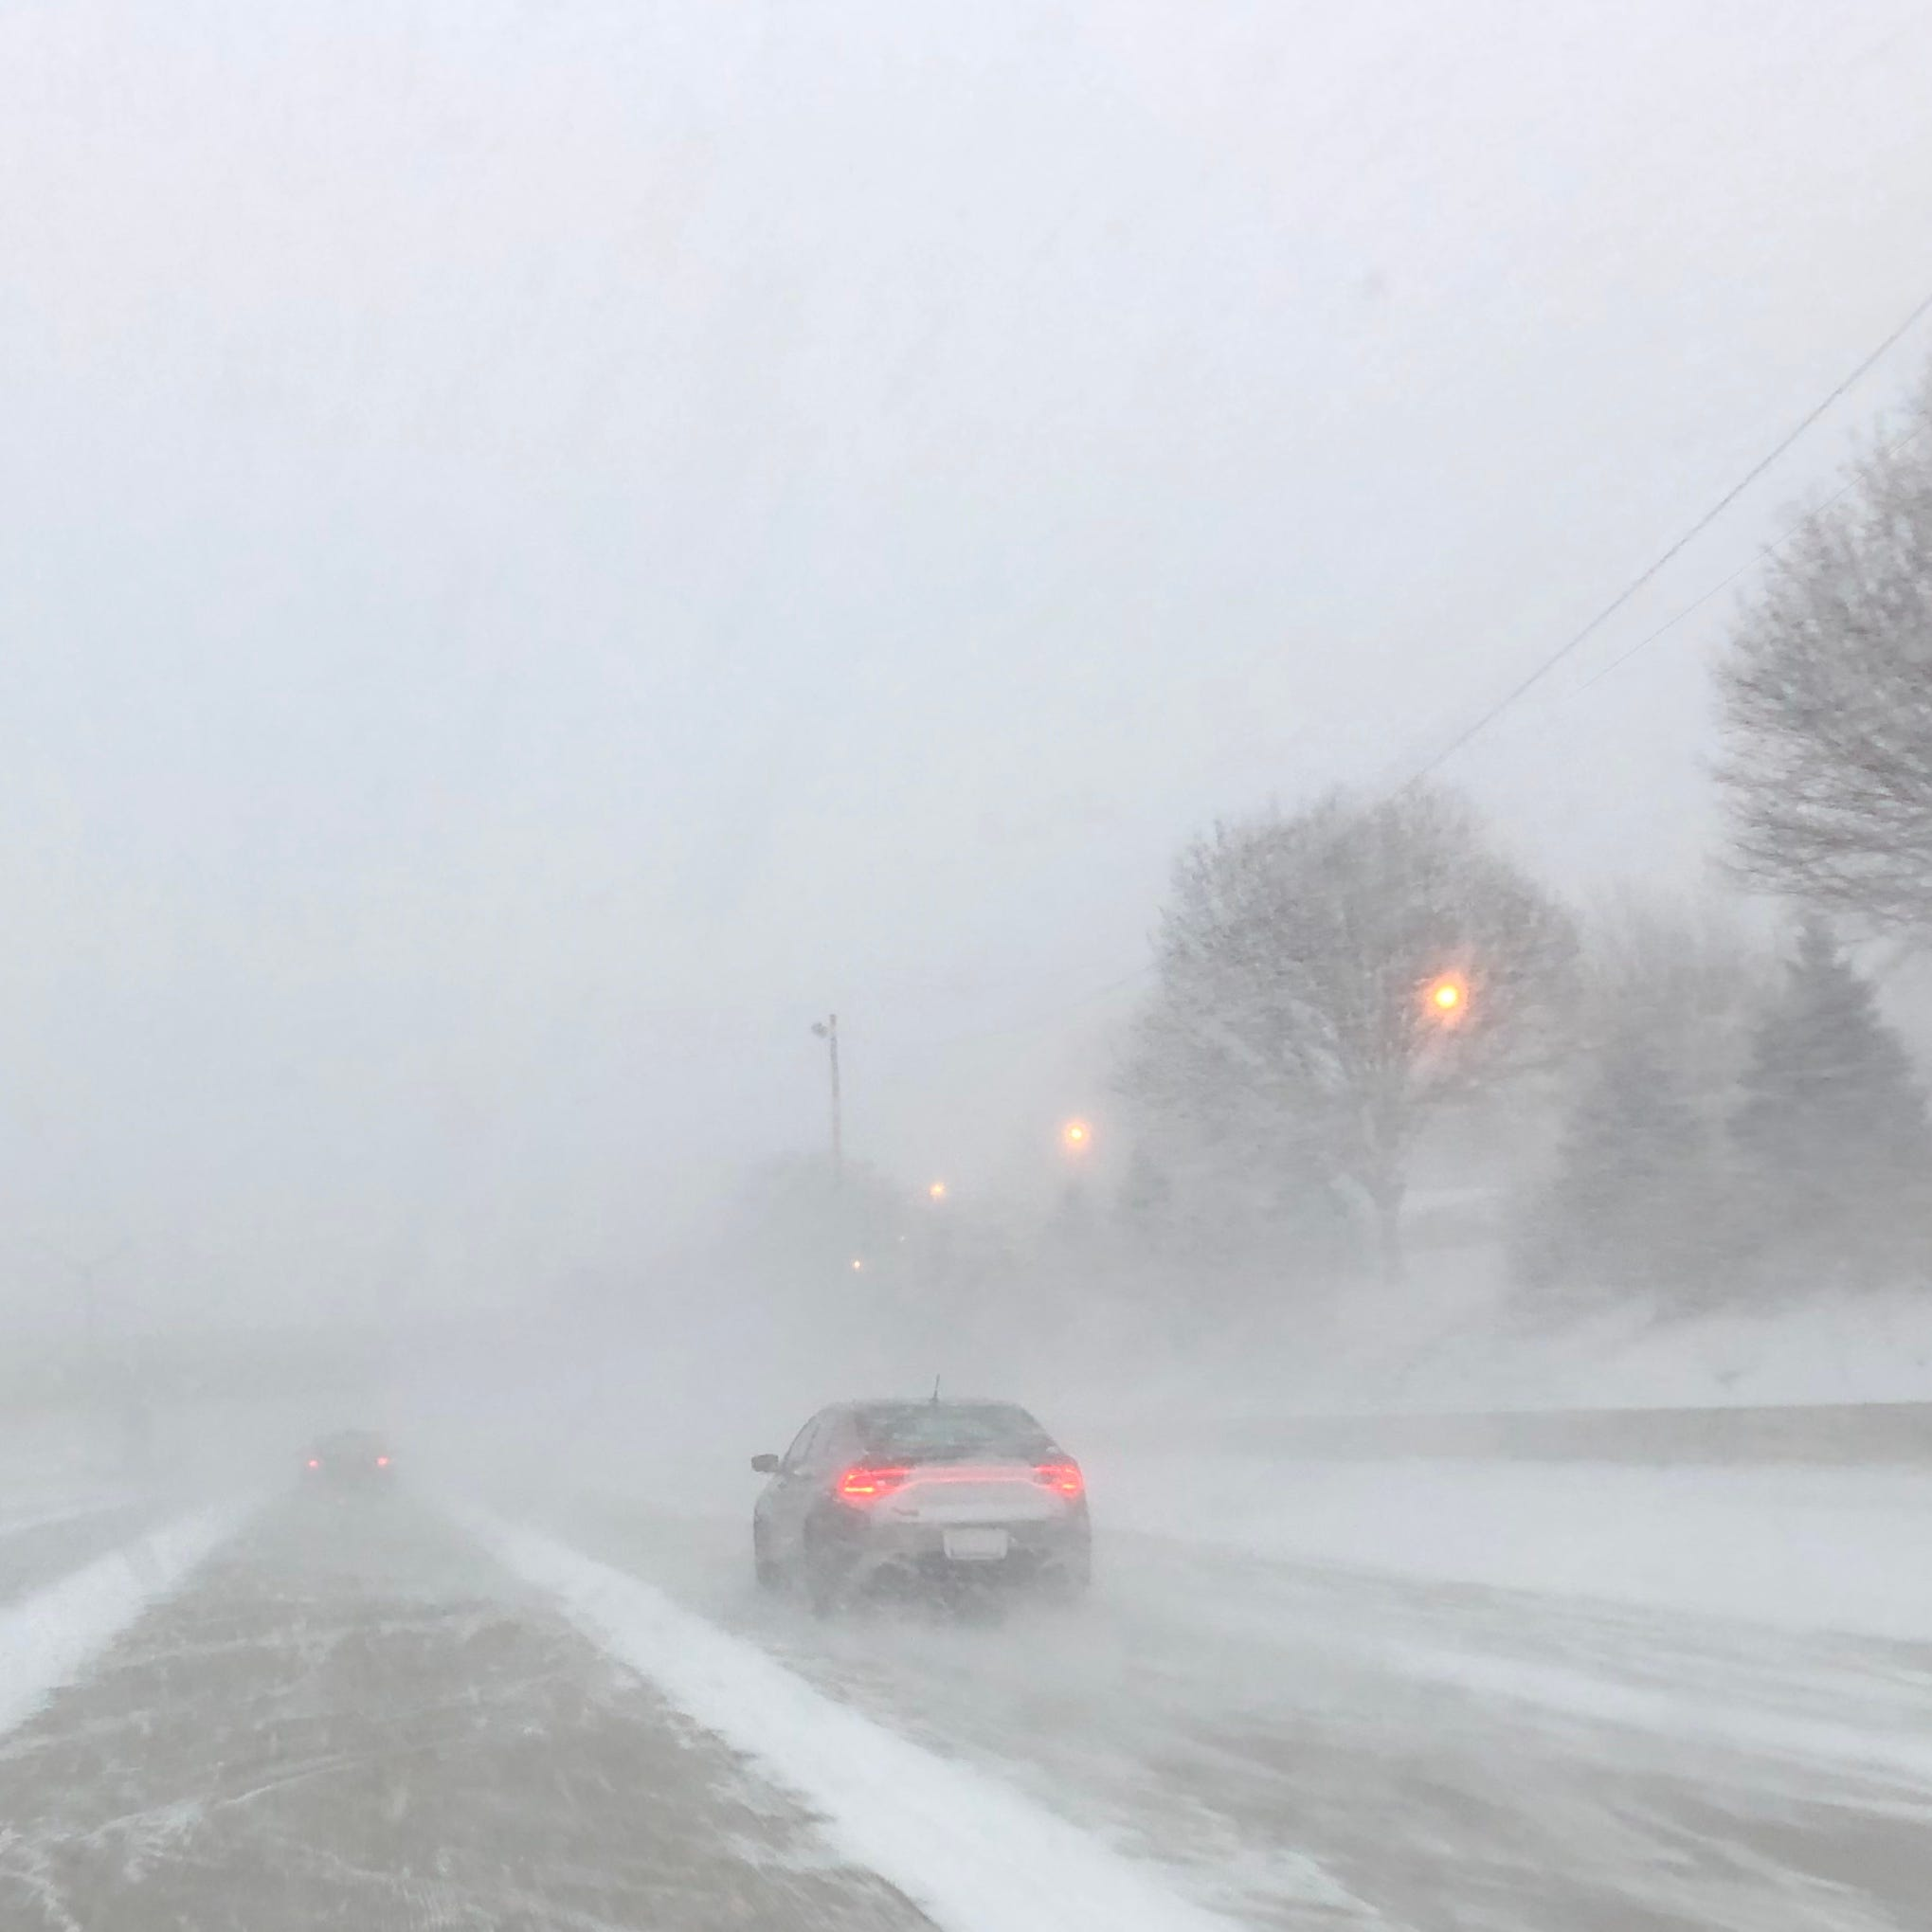 Winter weather advisory in place until 5 p.m.